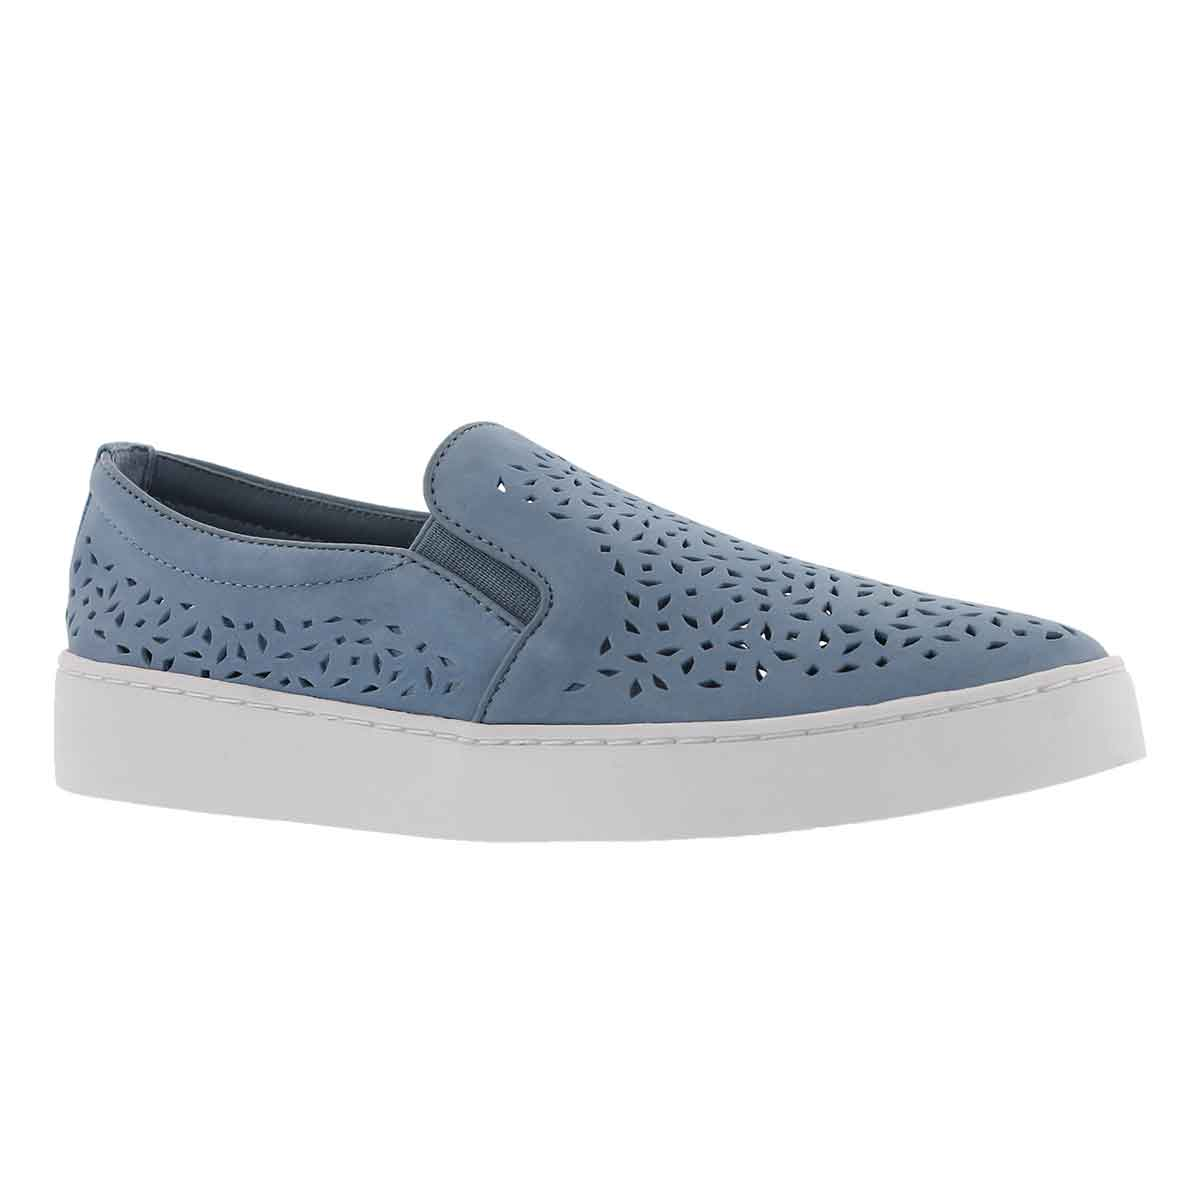 Women's MIDI PERF light blue casual slip on shoes